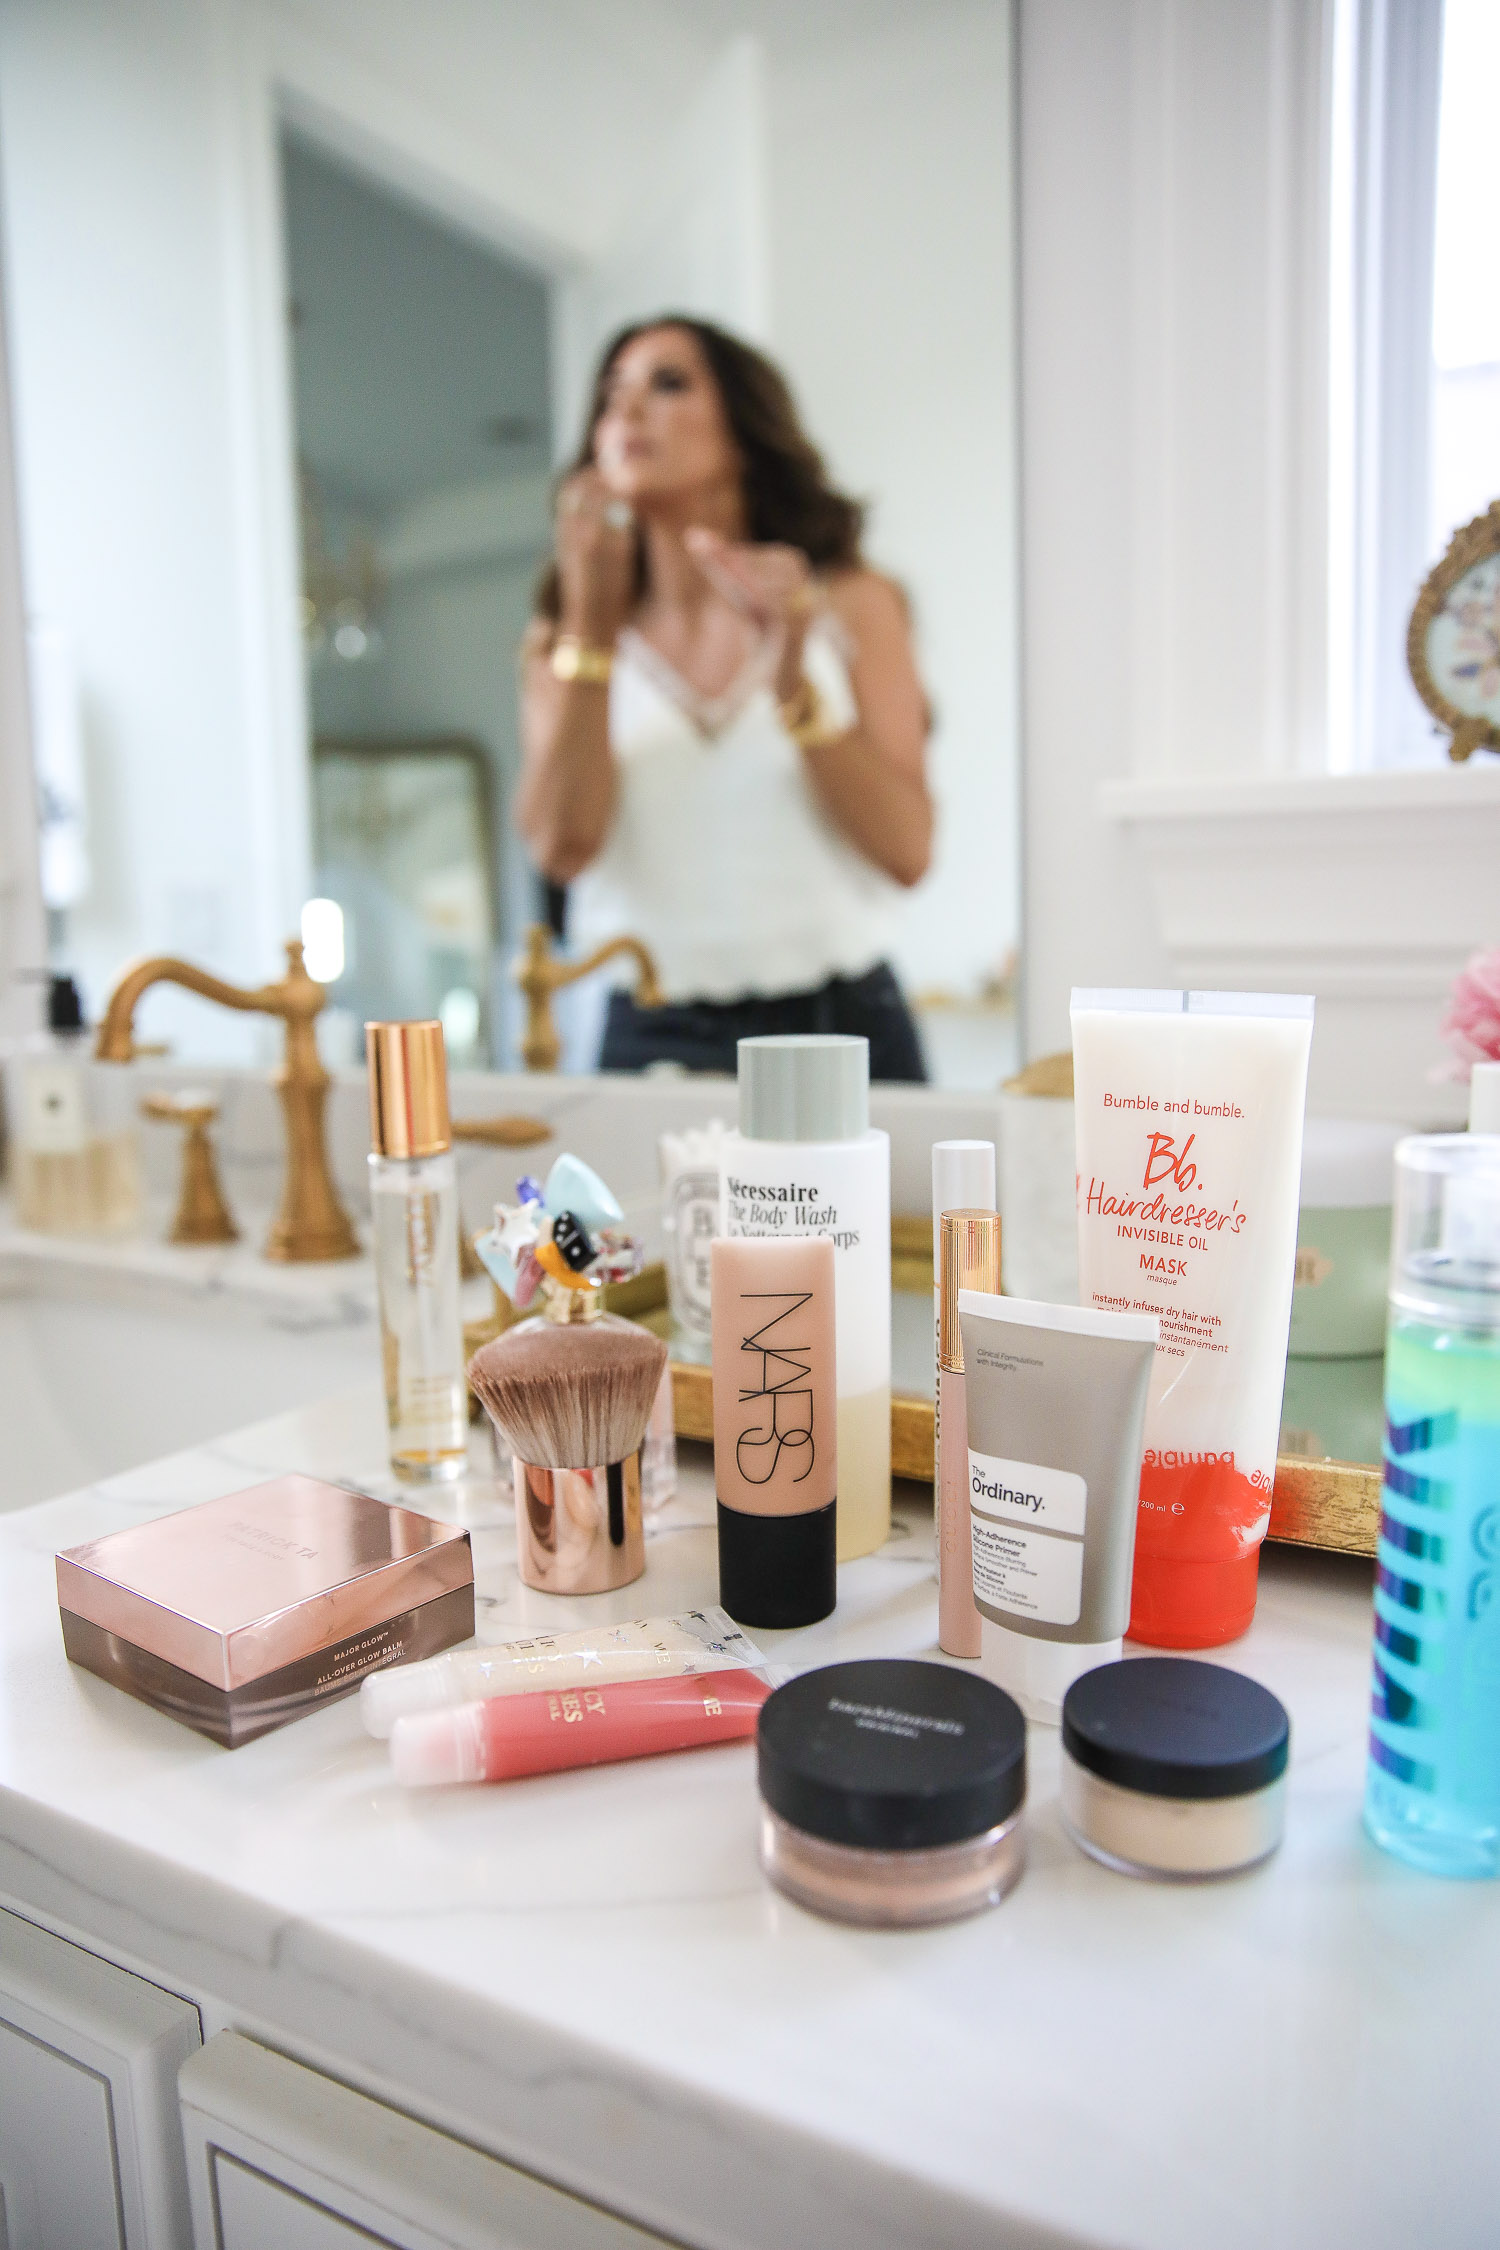 Sephora Favorites by popular US beauty blog, The Sweetest Thing: image of Nars foundation, The Ordinary primer, Bare Minerals powder, Milk makeup setting spray, lip gloss, and powder brush on a marble bathroom vanity counter.